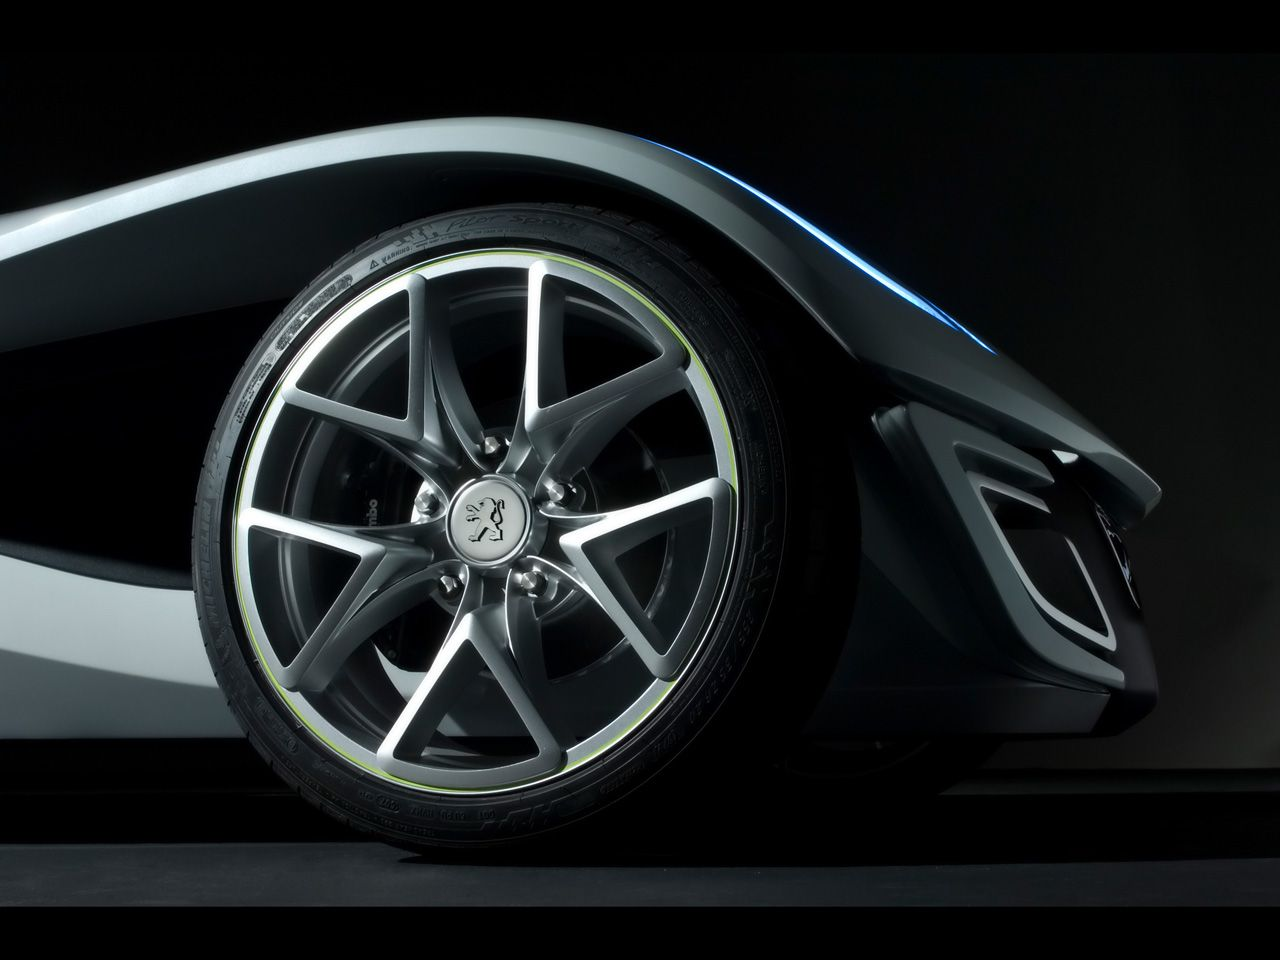 Peugeot Flux Concept Cars Car Car Wallpapers